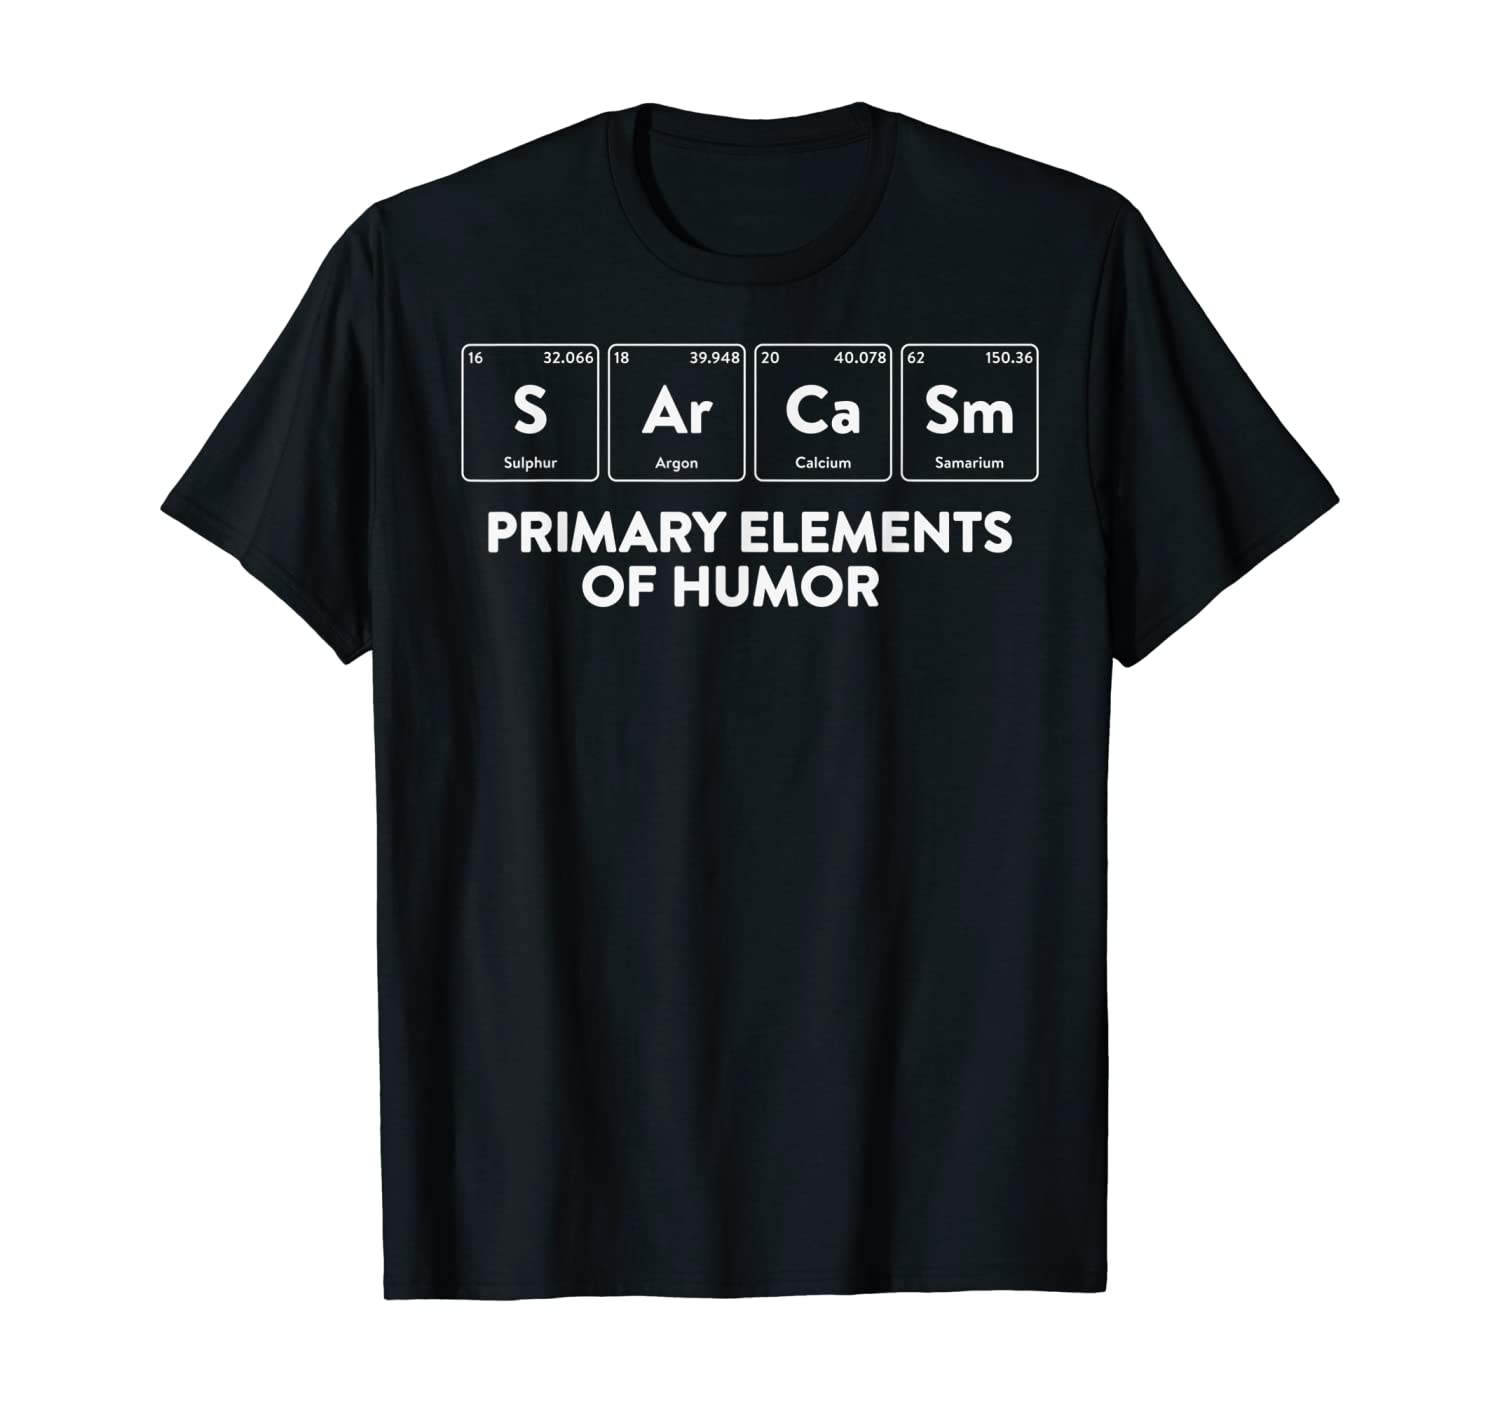 Primary Elements of Humor Science Shirt Sarcasm S Ar Ca Sm T-Shirt